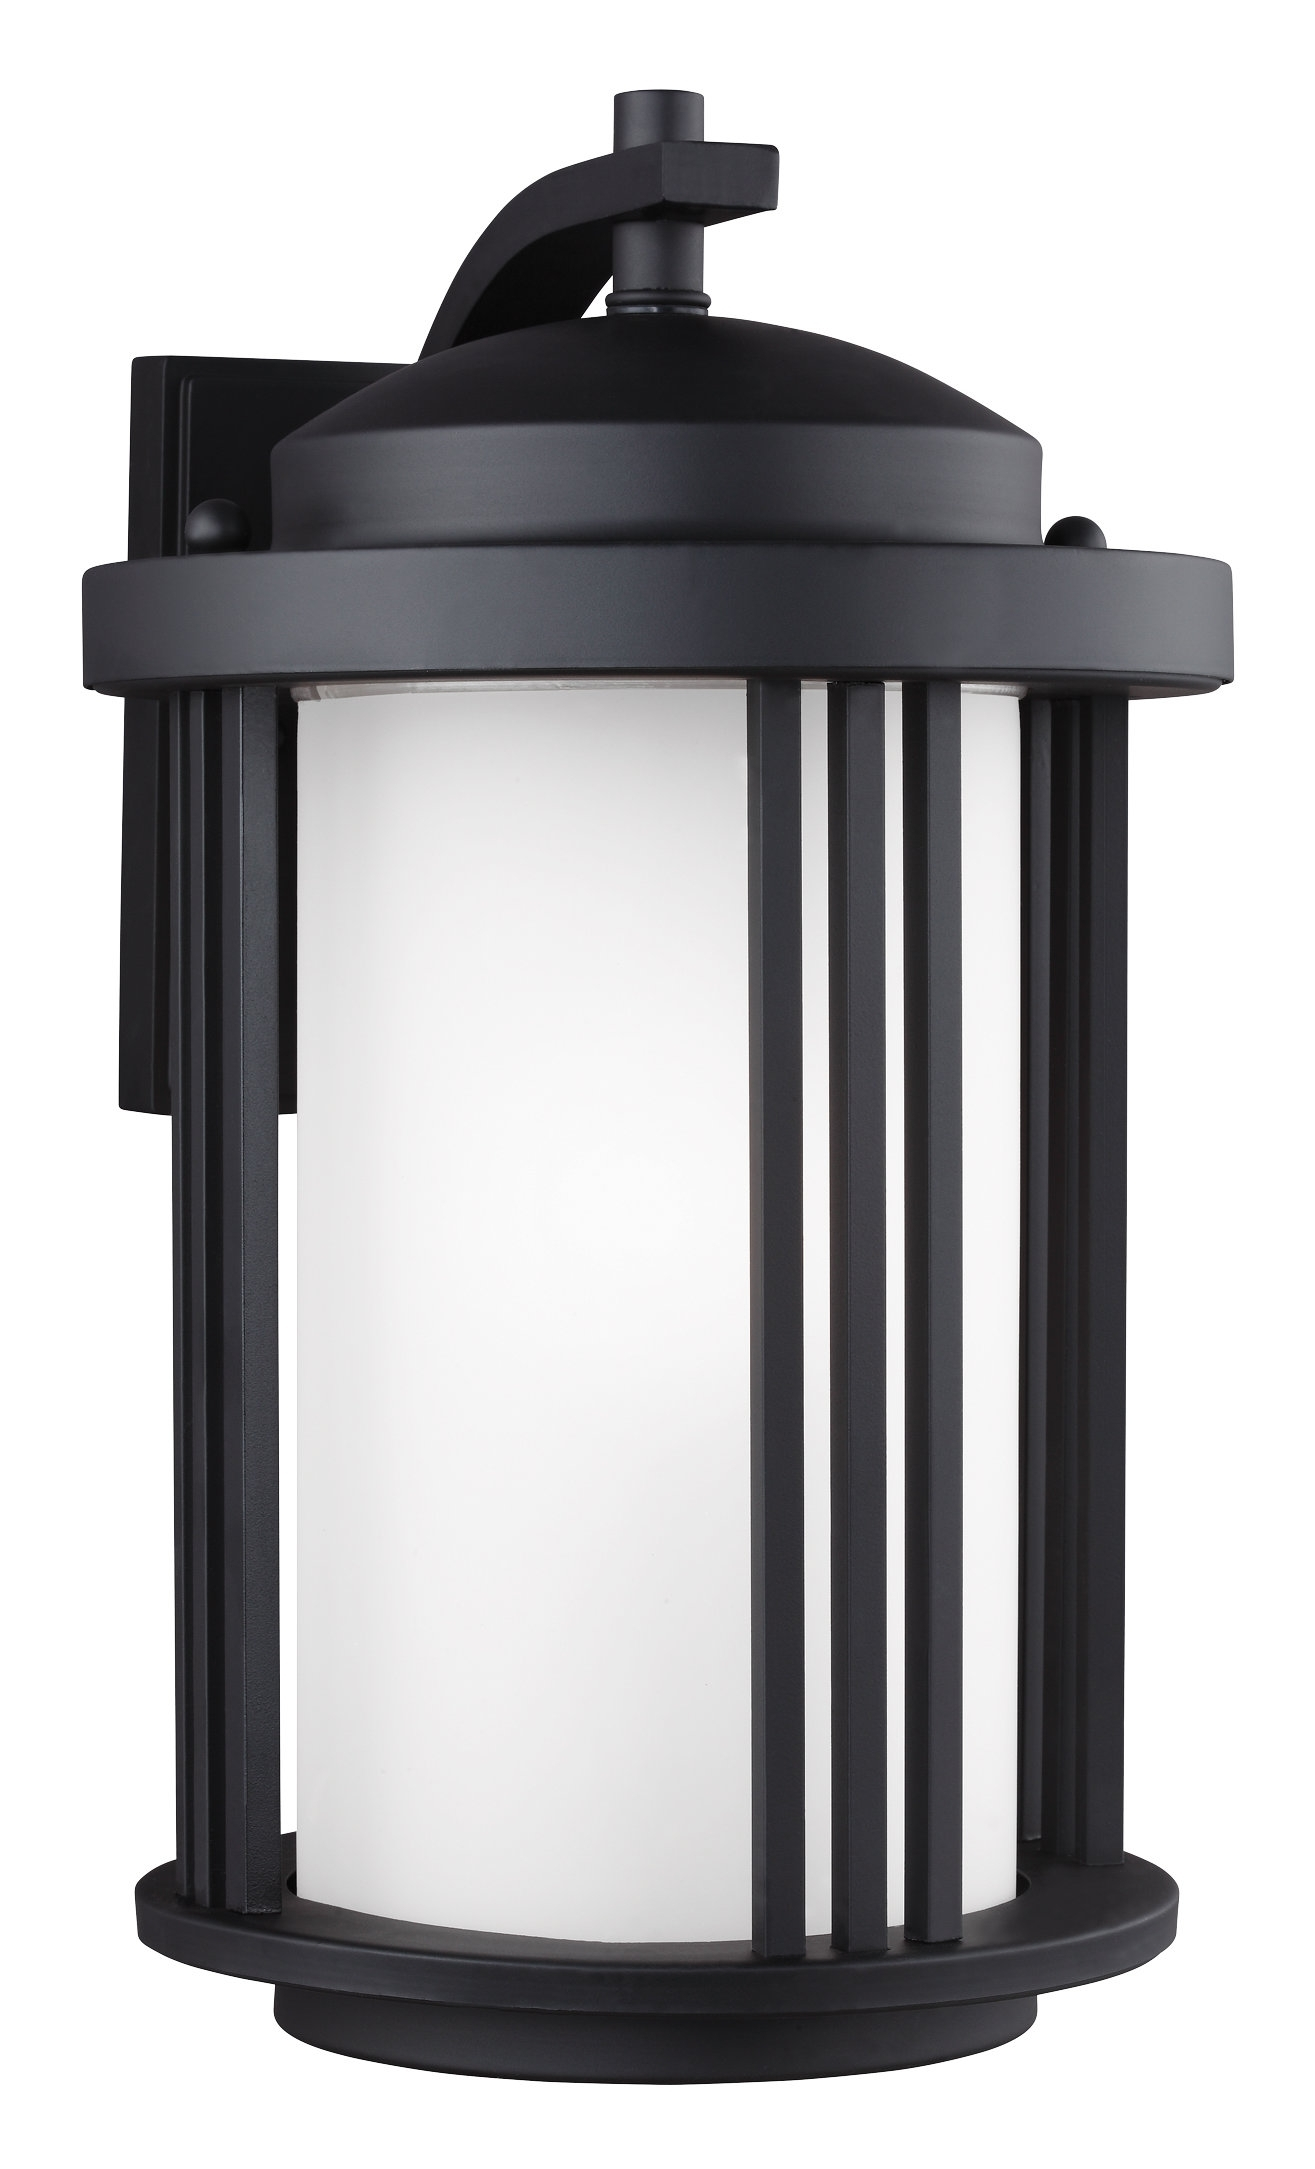 Darby Home Co Dunkley 1 Light Outdoor Wall Lantern | Wayfair Inside Outdoor Weather Resistant Lanterns (View 5 of 20)